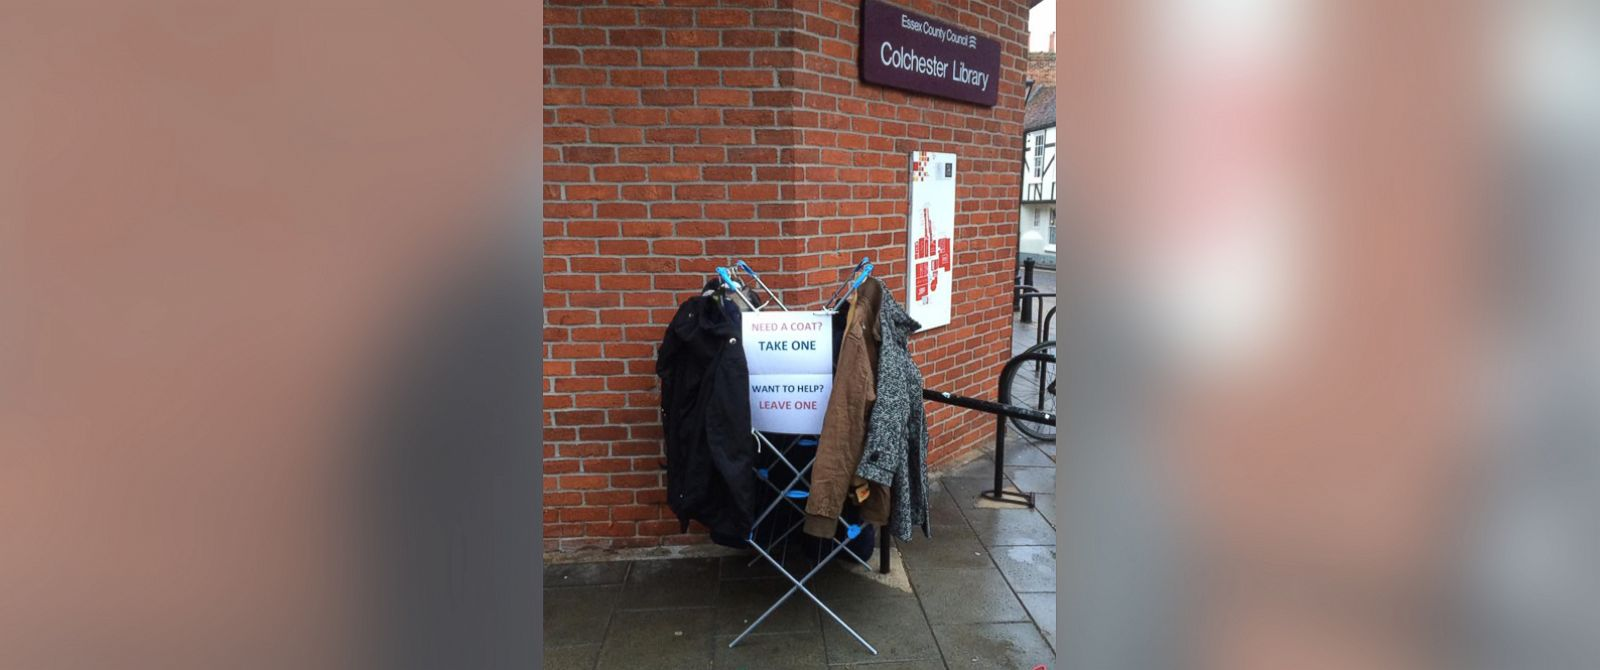 PHOTO: Fay Sibley, of Essex, U.K., placed a clothing rack full of coats outside of her local library to help the homeless keep warm during winter.